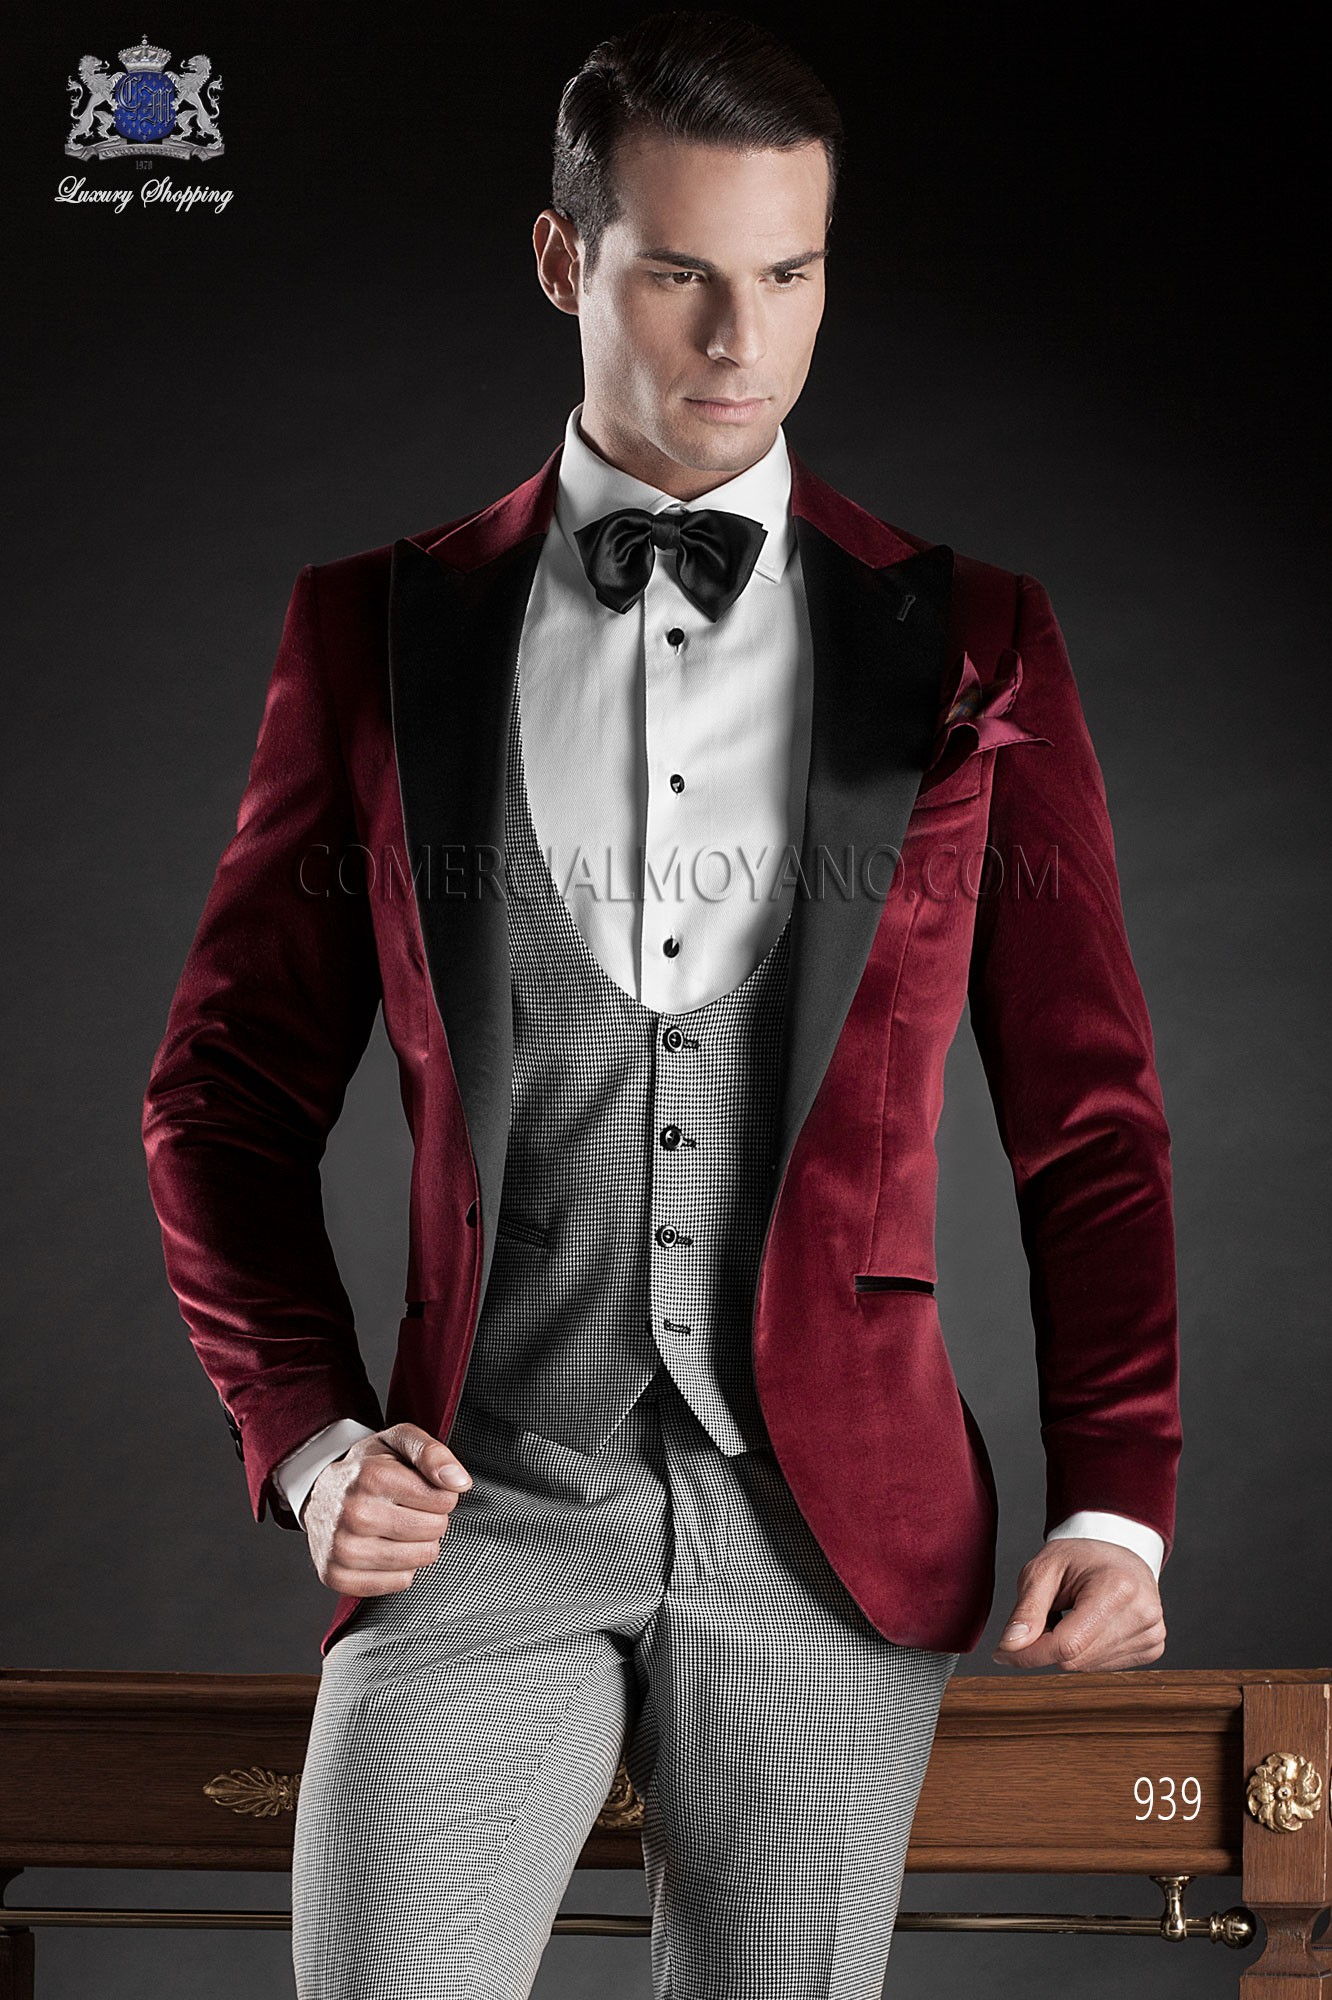 Italian Red Wedding Tuxedo Loading Zoom